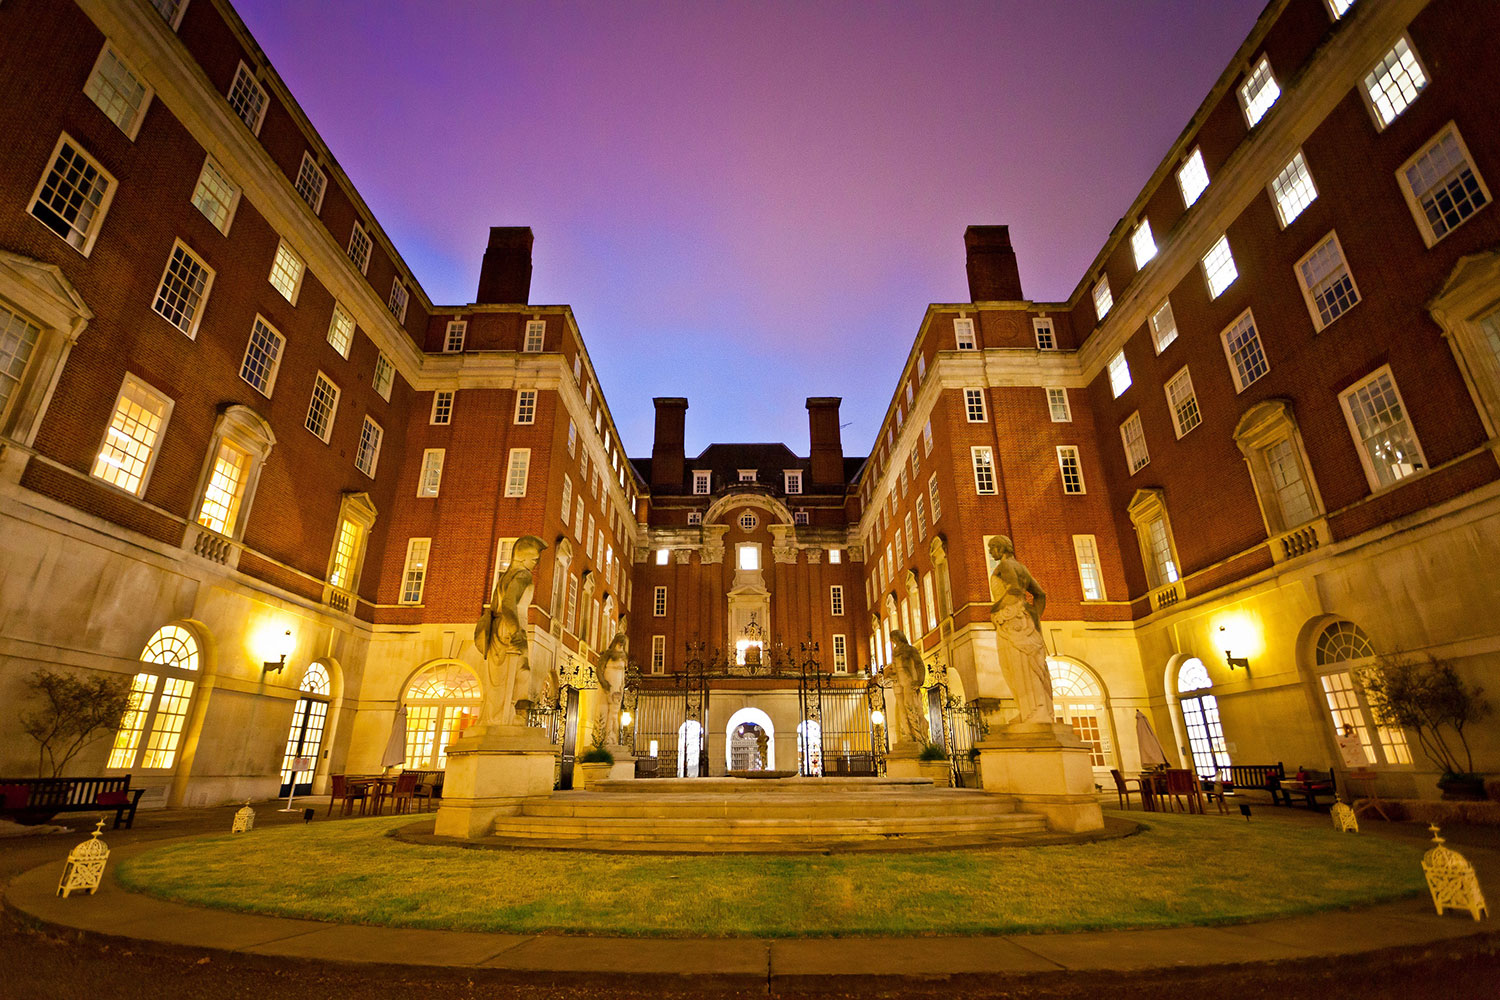 bma house, london wedding venue